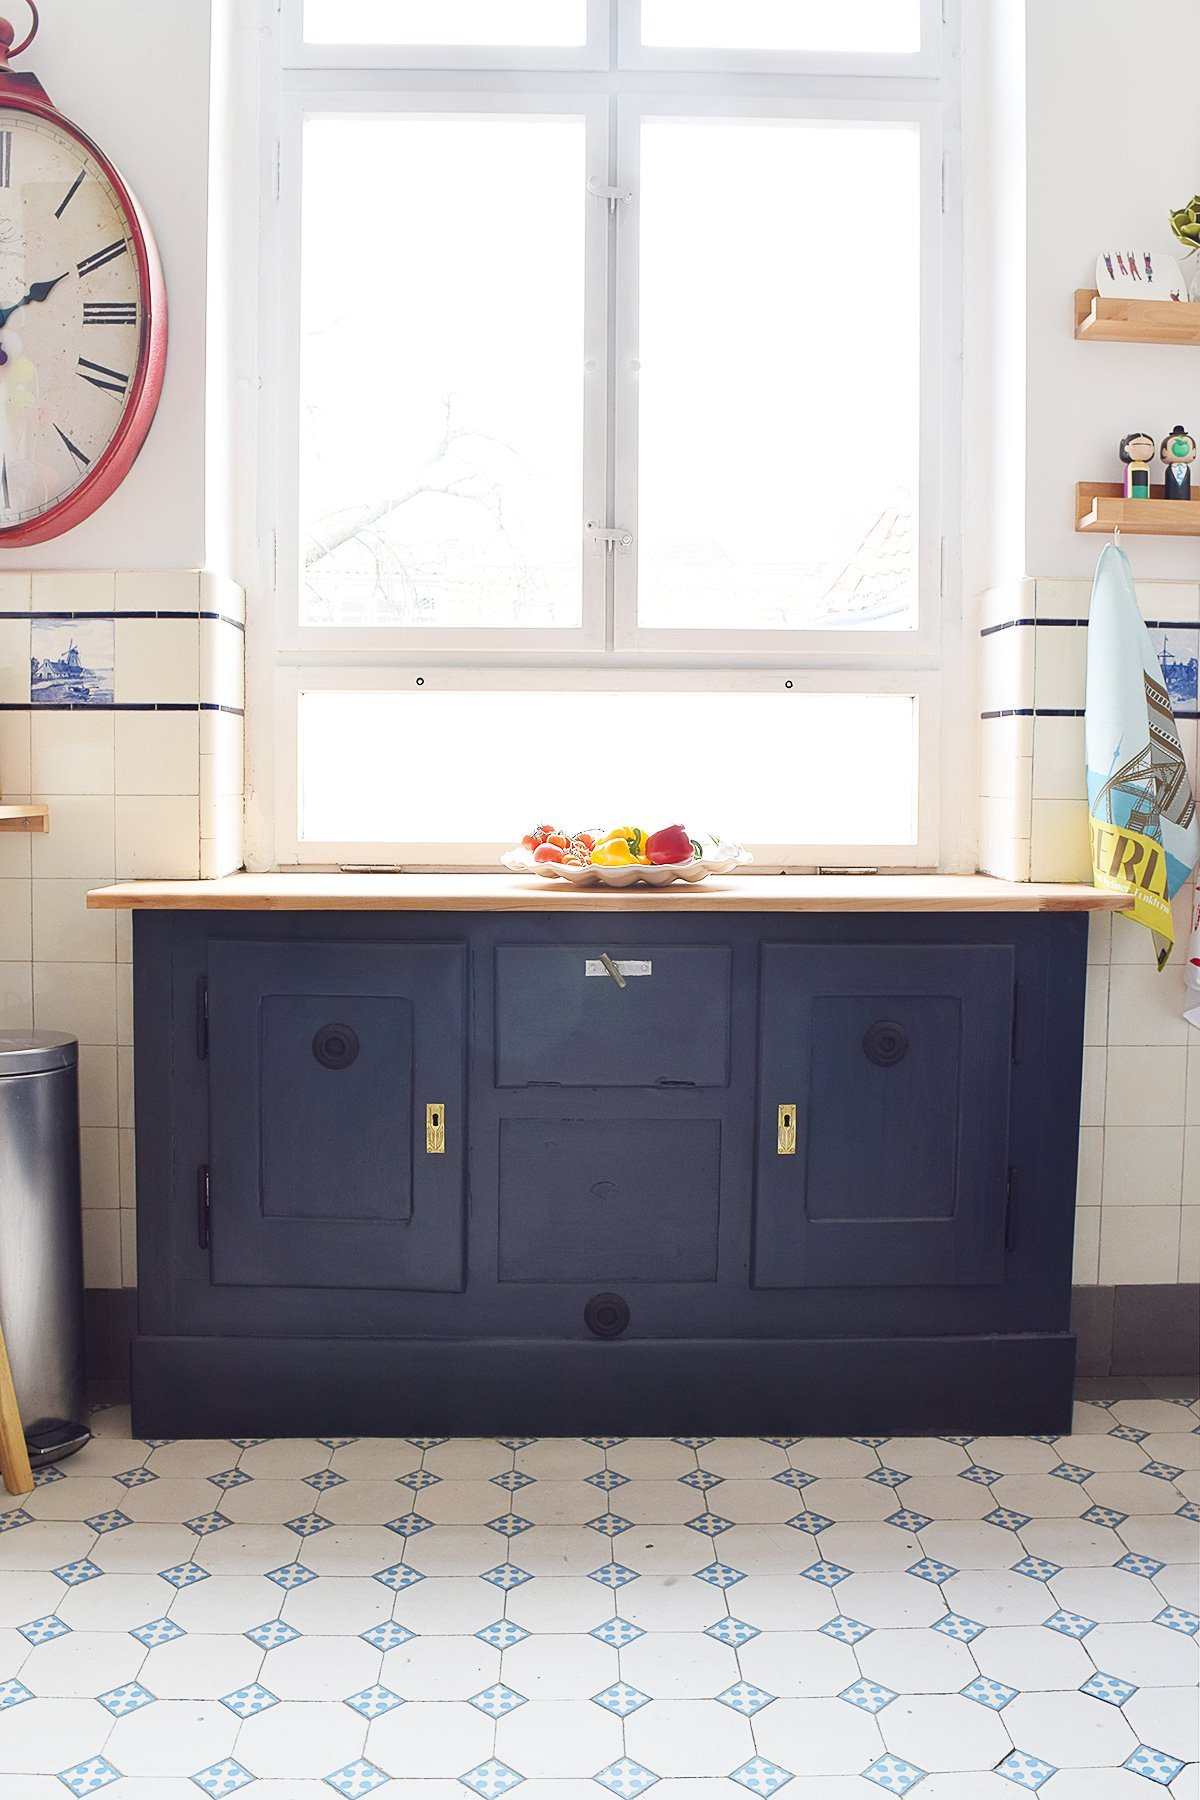 Antique Fridge Painted in Farrow & Ball Railings | Little House On The Corner